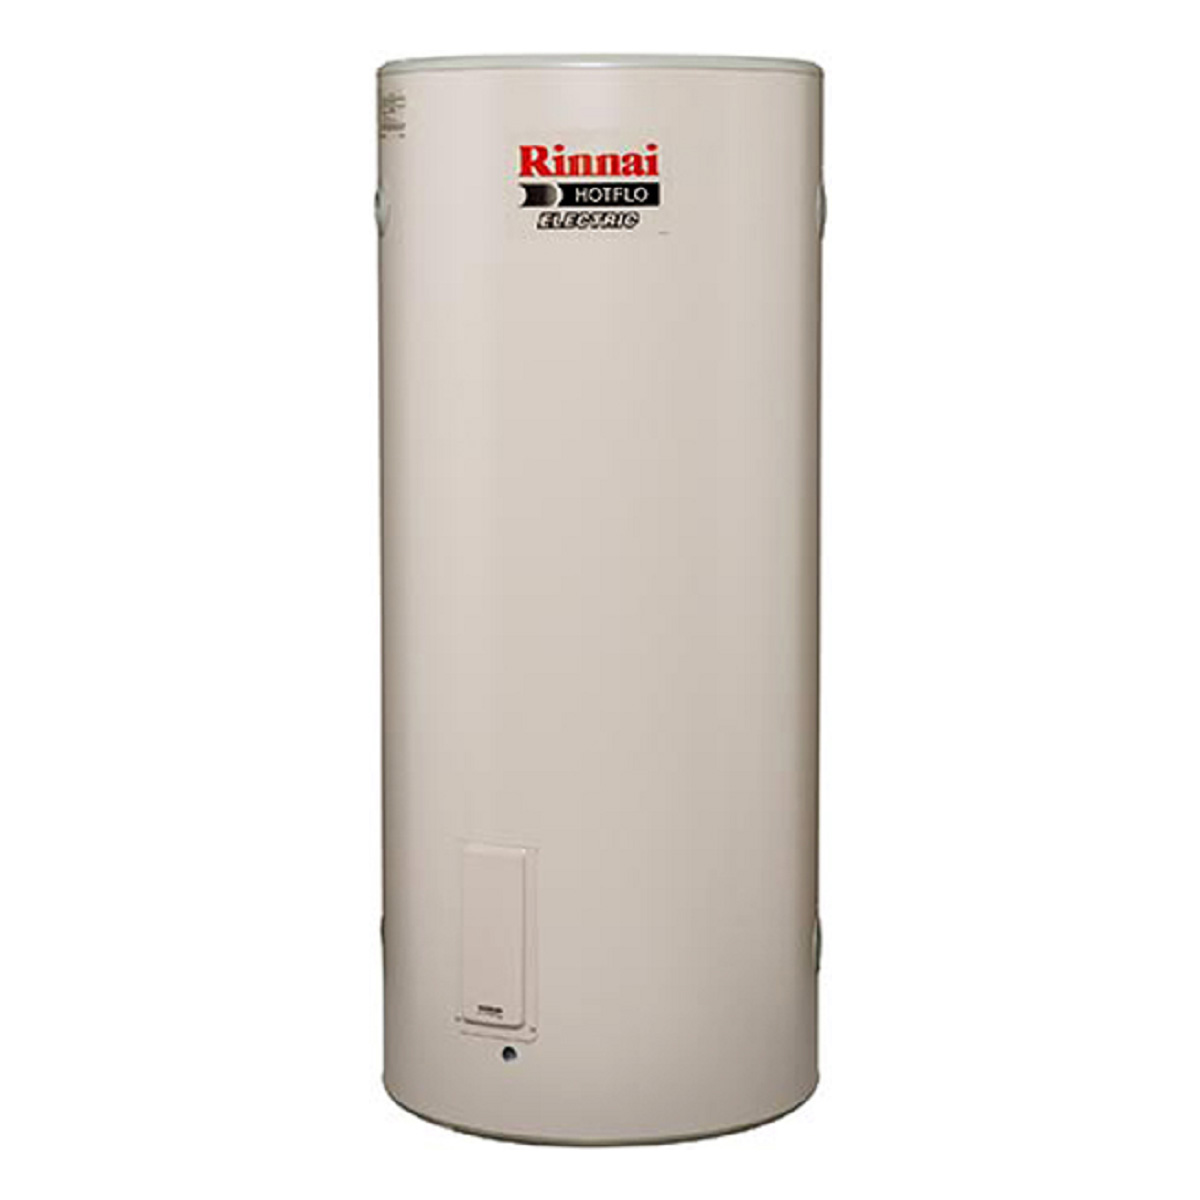 Rinnai EHF250S36 250L Electric Hot Water System